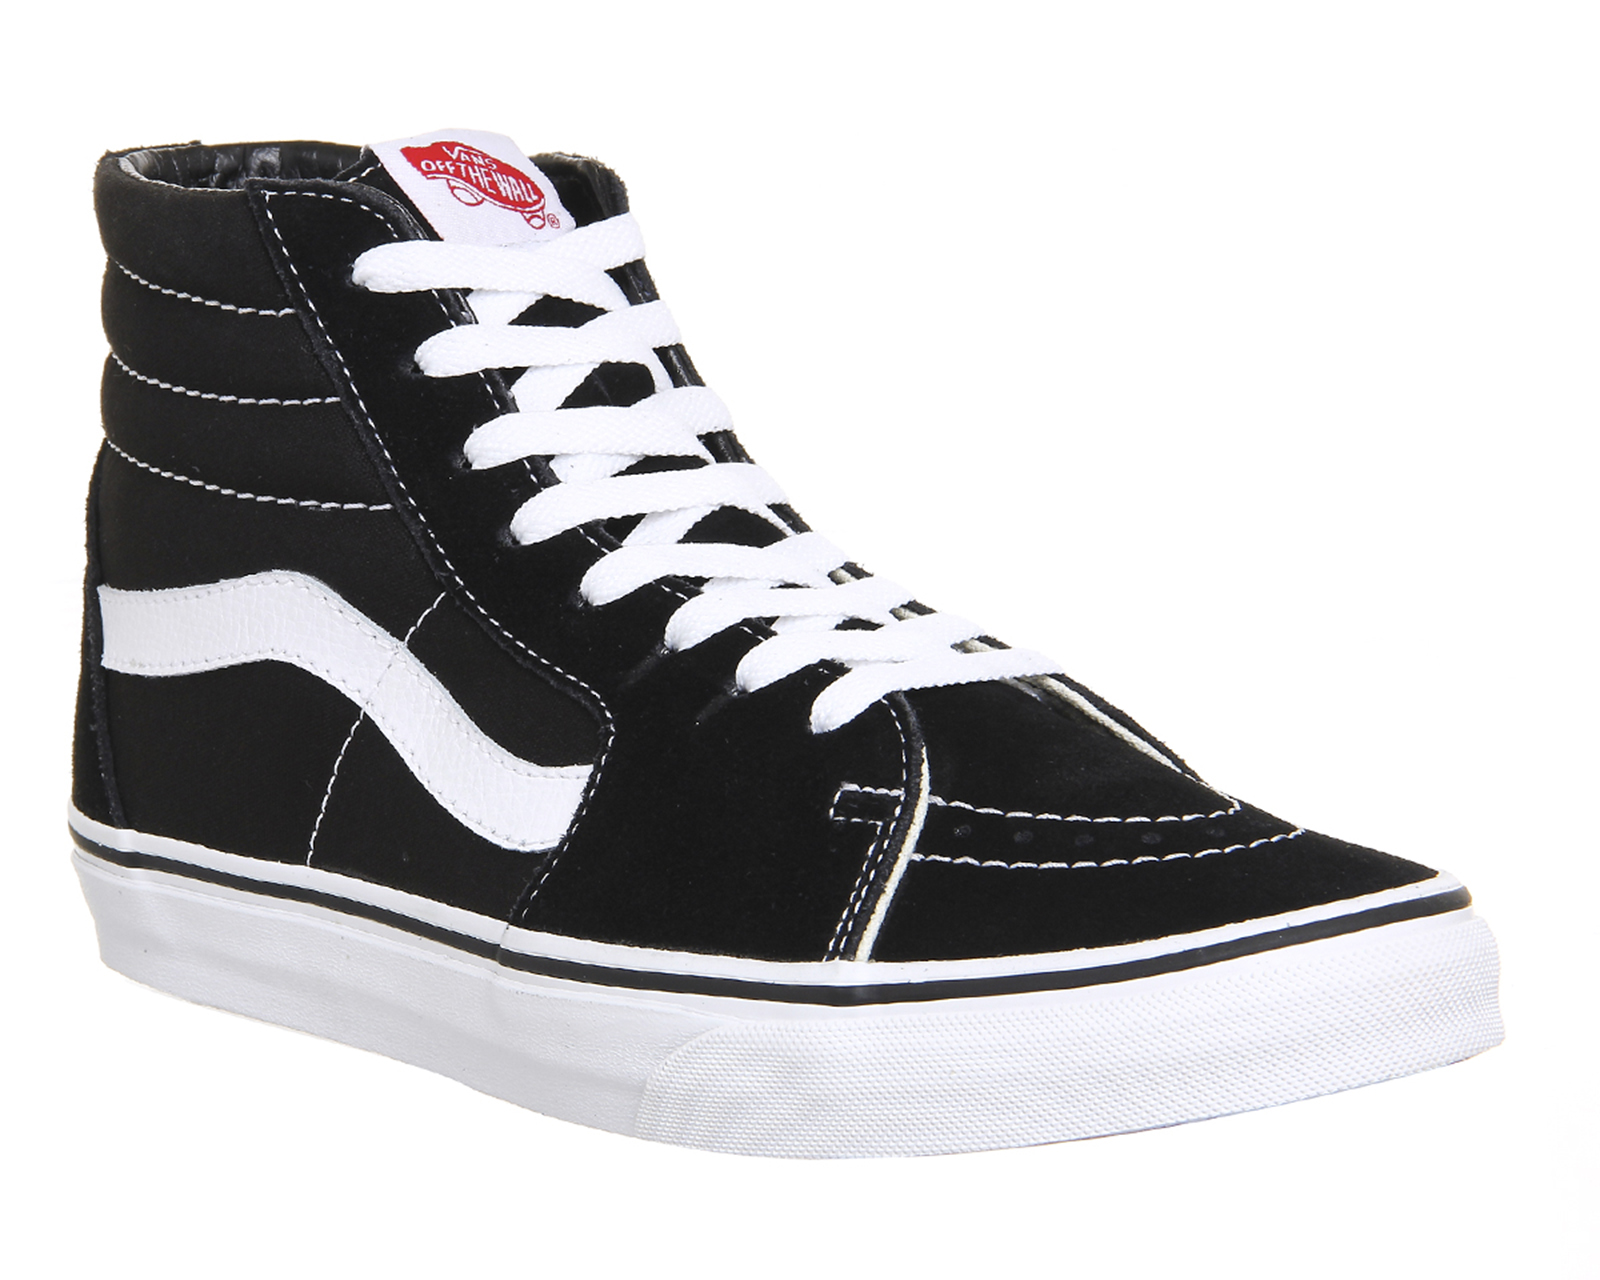 womens vans sk8 hi black white canvas trainers shoes ebay. Black Bedroom Furniture Sets. Home Design Ideas